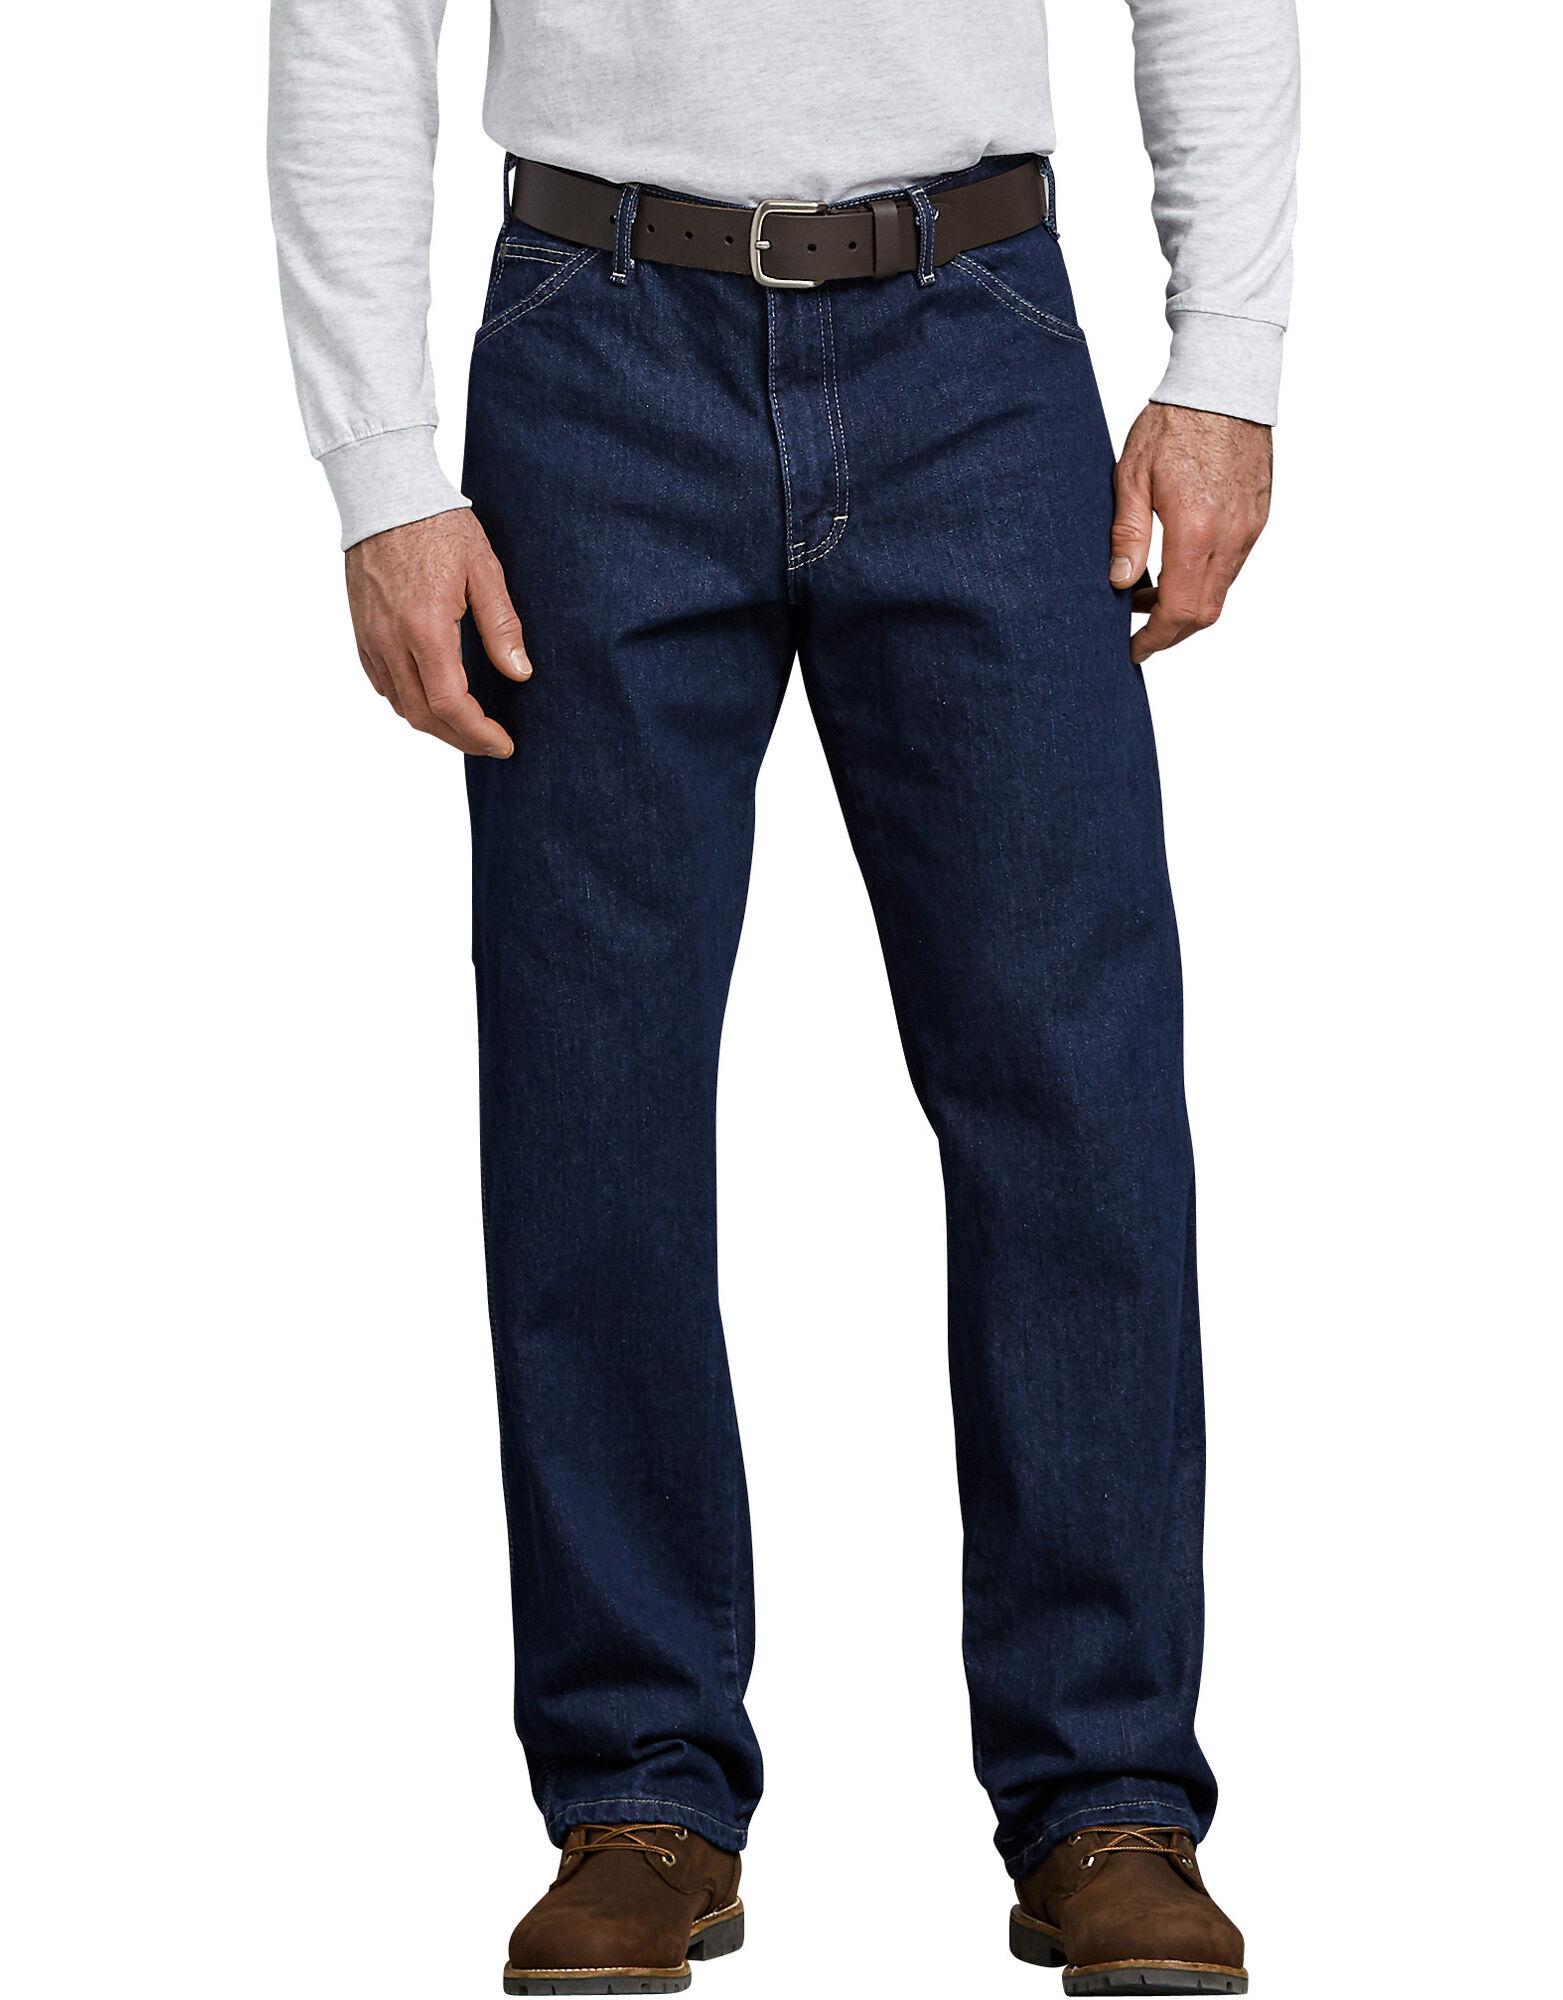 Men's Carpenter Jeans | Dickies